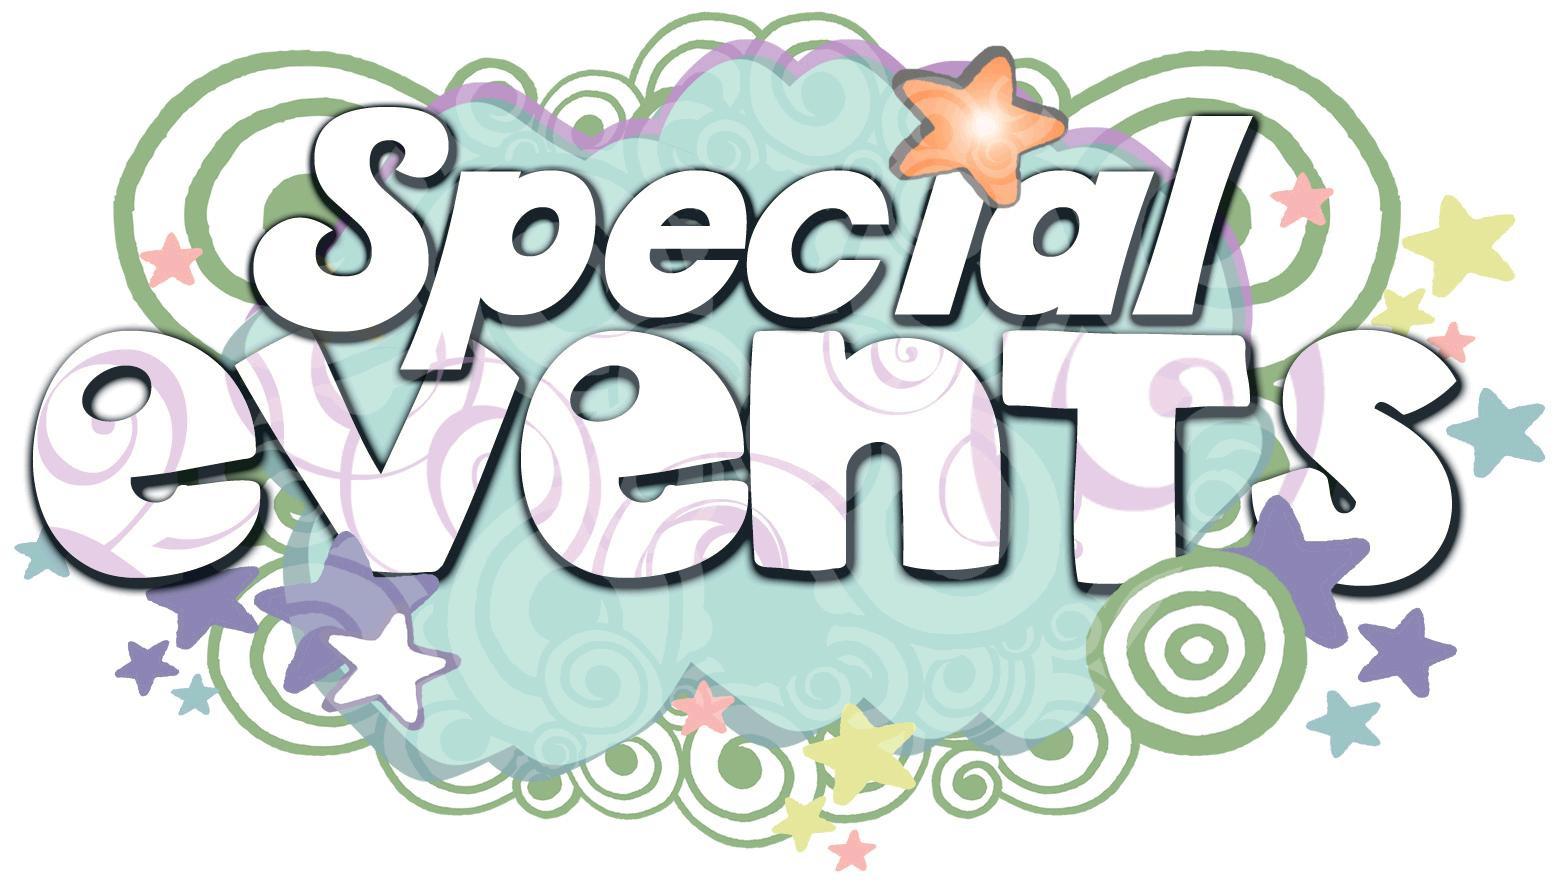 Free January Events Cliparts, Download Free Clip Art, Free.